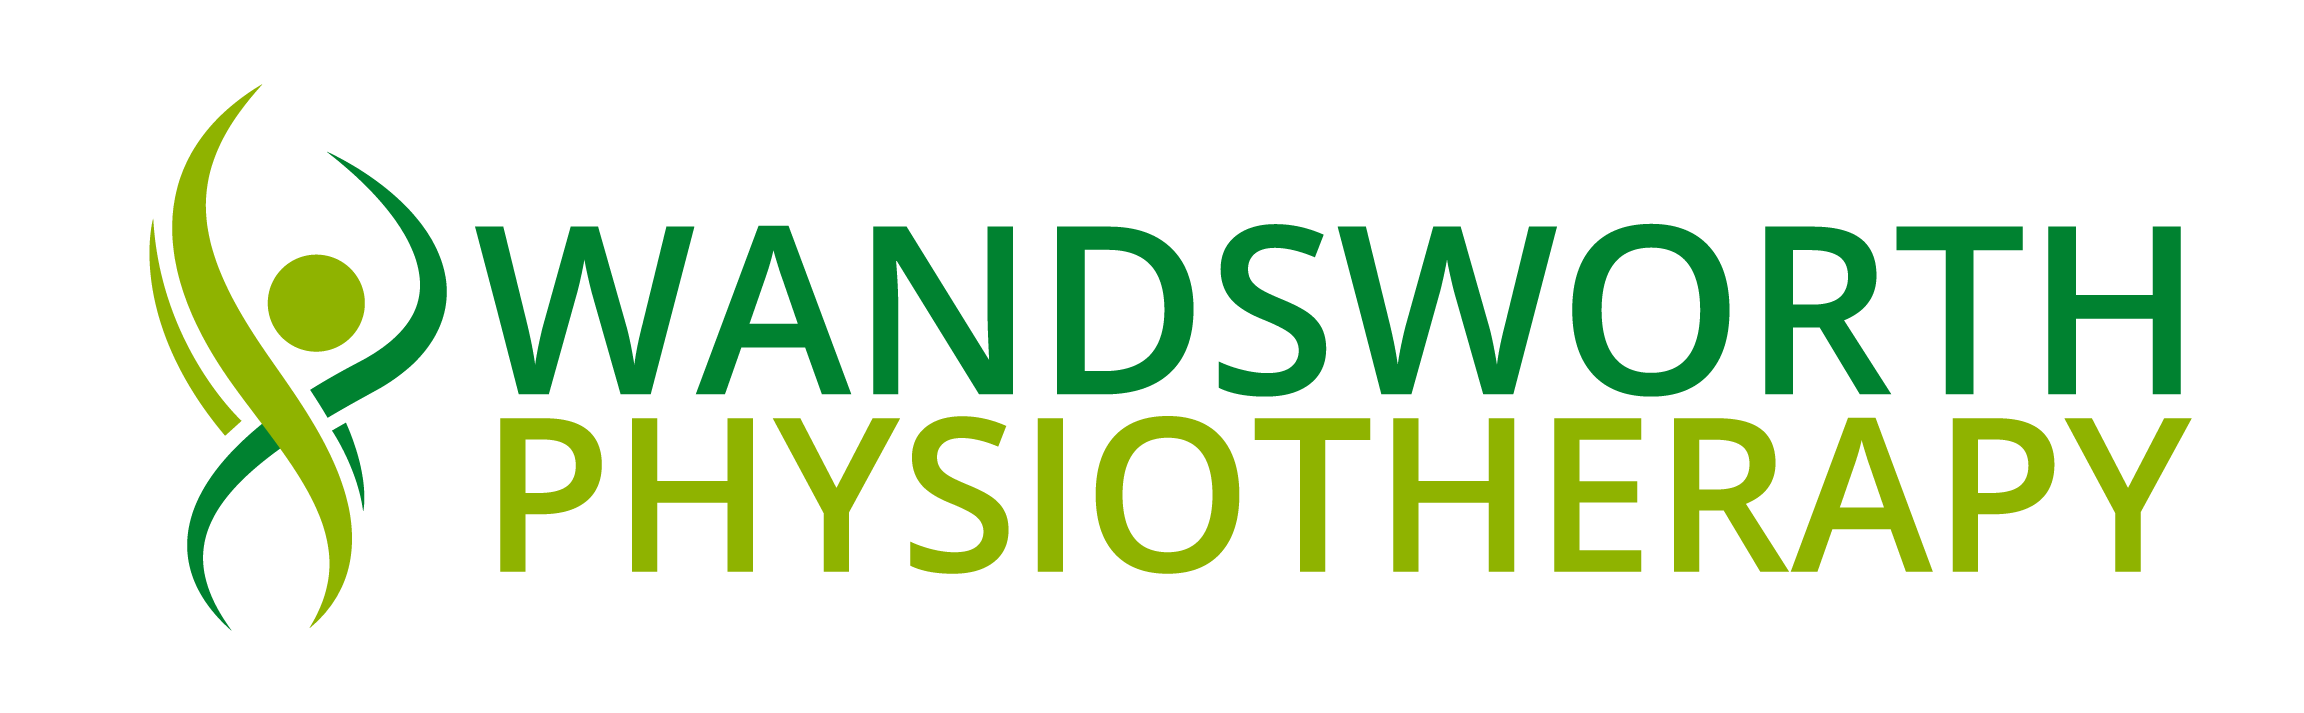 Wandsworth Physiotherapy Announces Its One Year Anniversary in Its Beautiful New Wandsworth Town Clinic